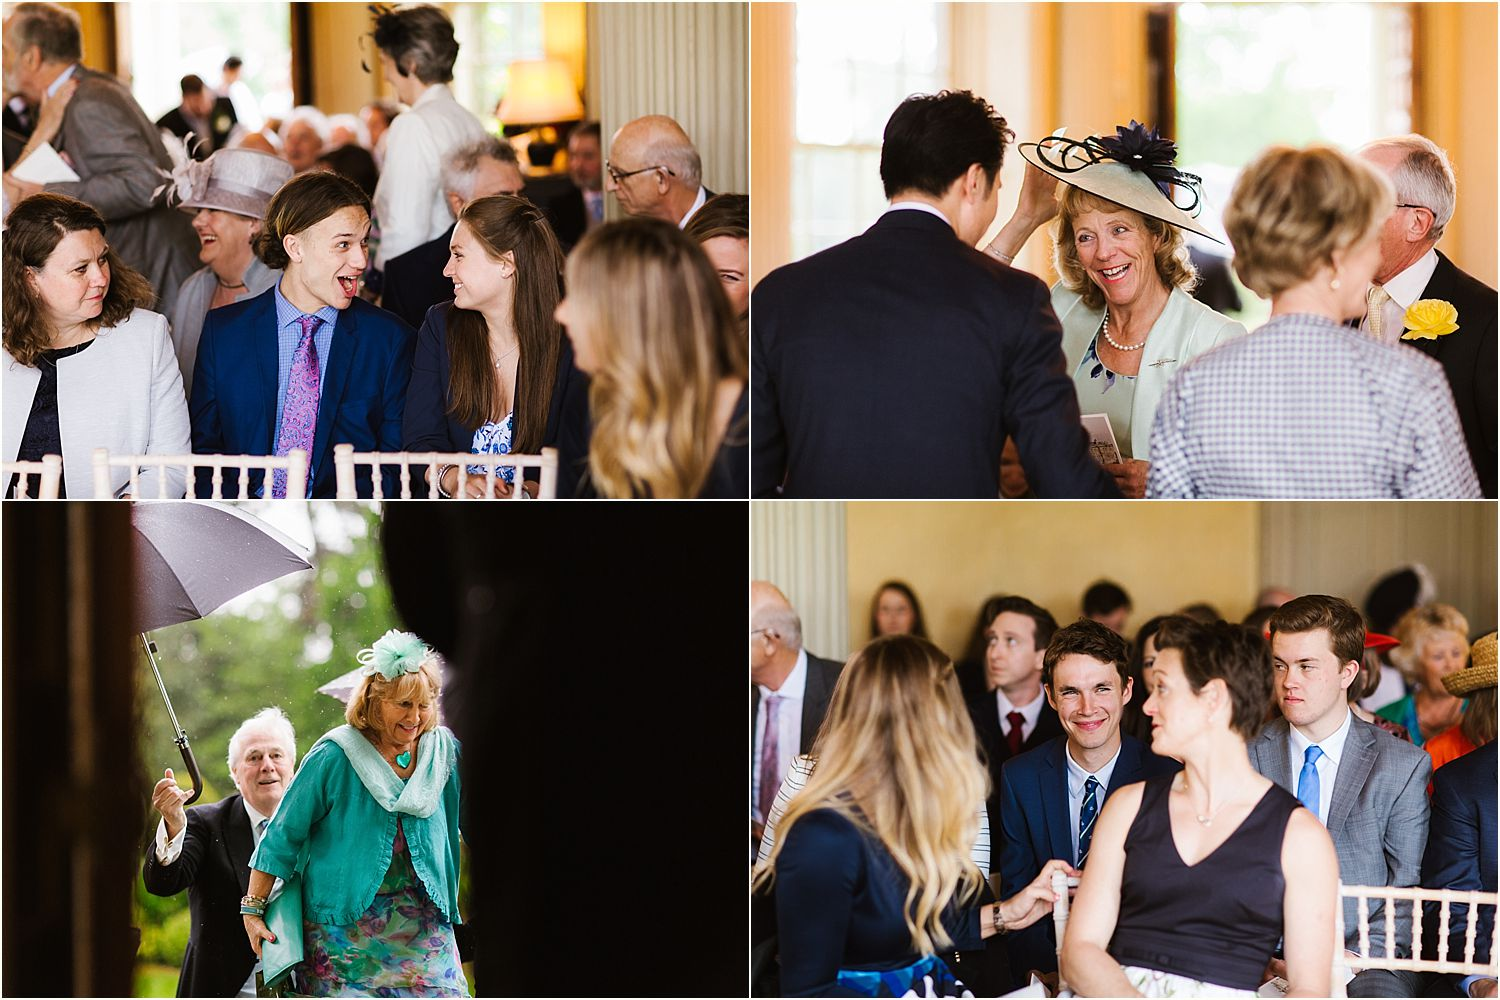 Guests arriving at Hampton Court House wedding, London